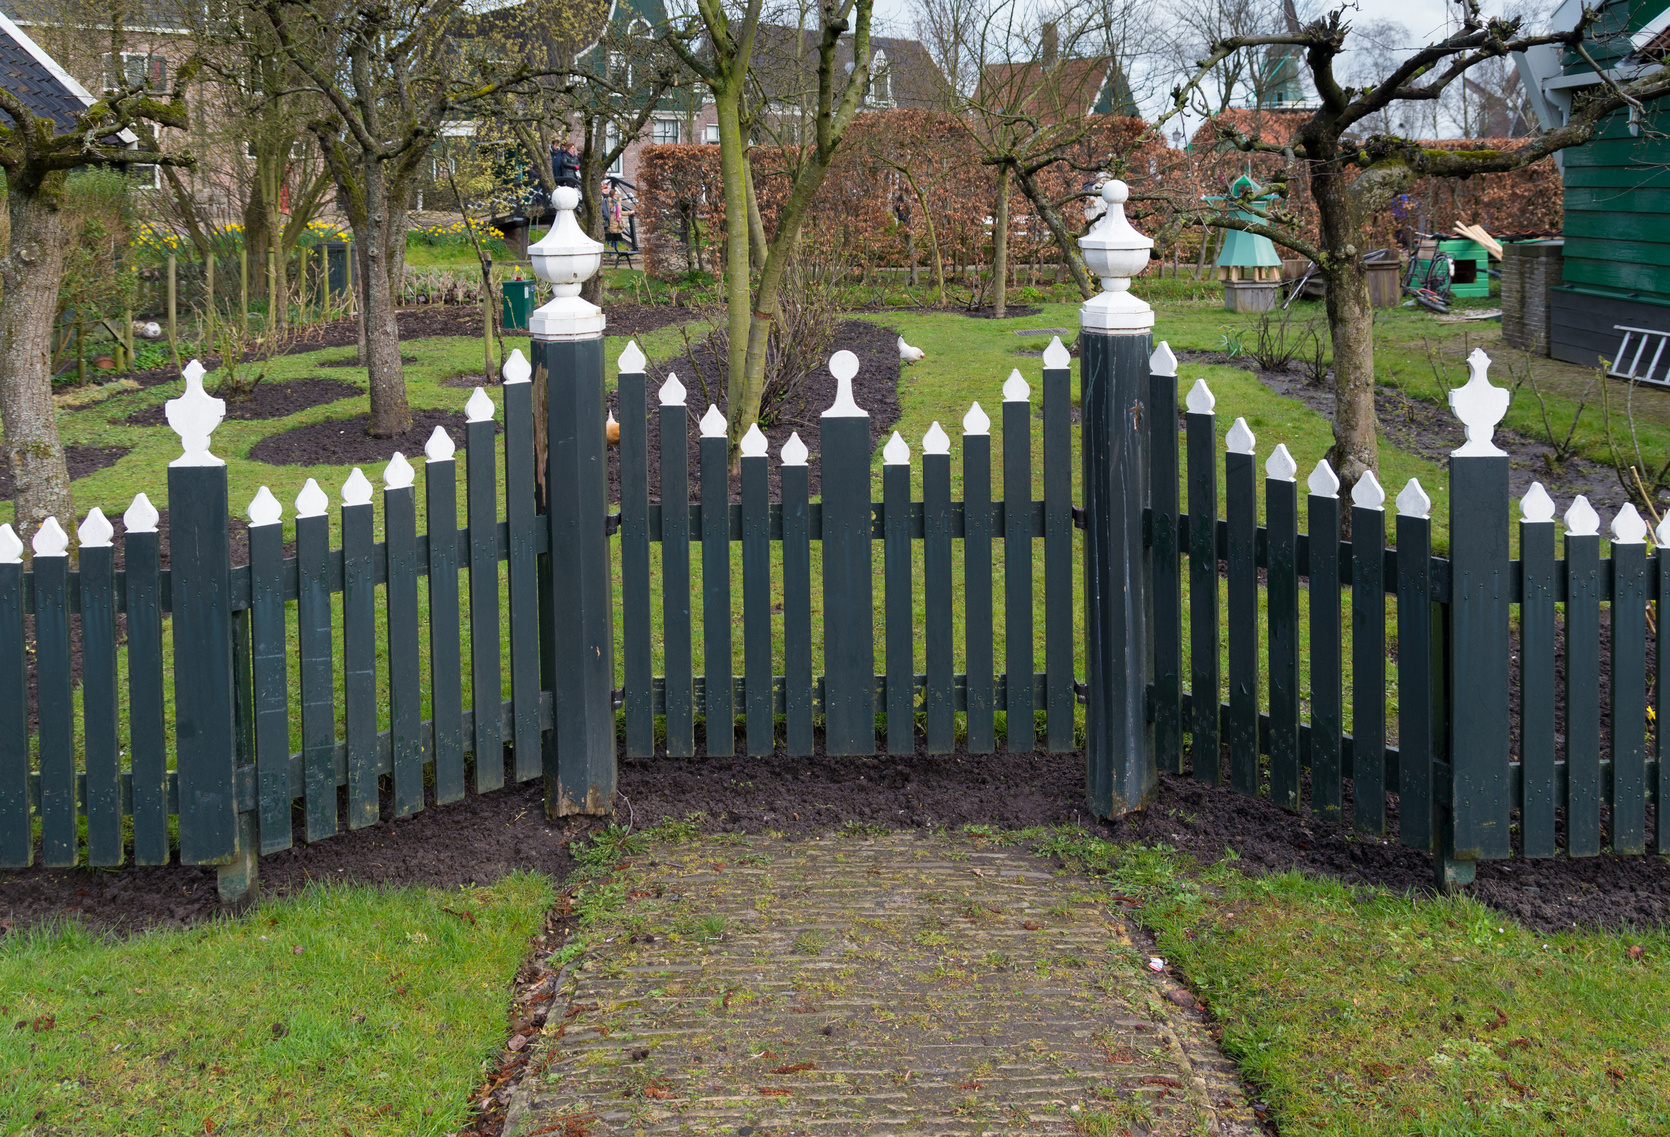 traditional green wooden fence